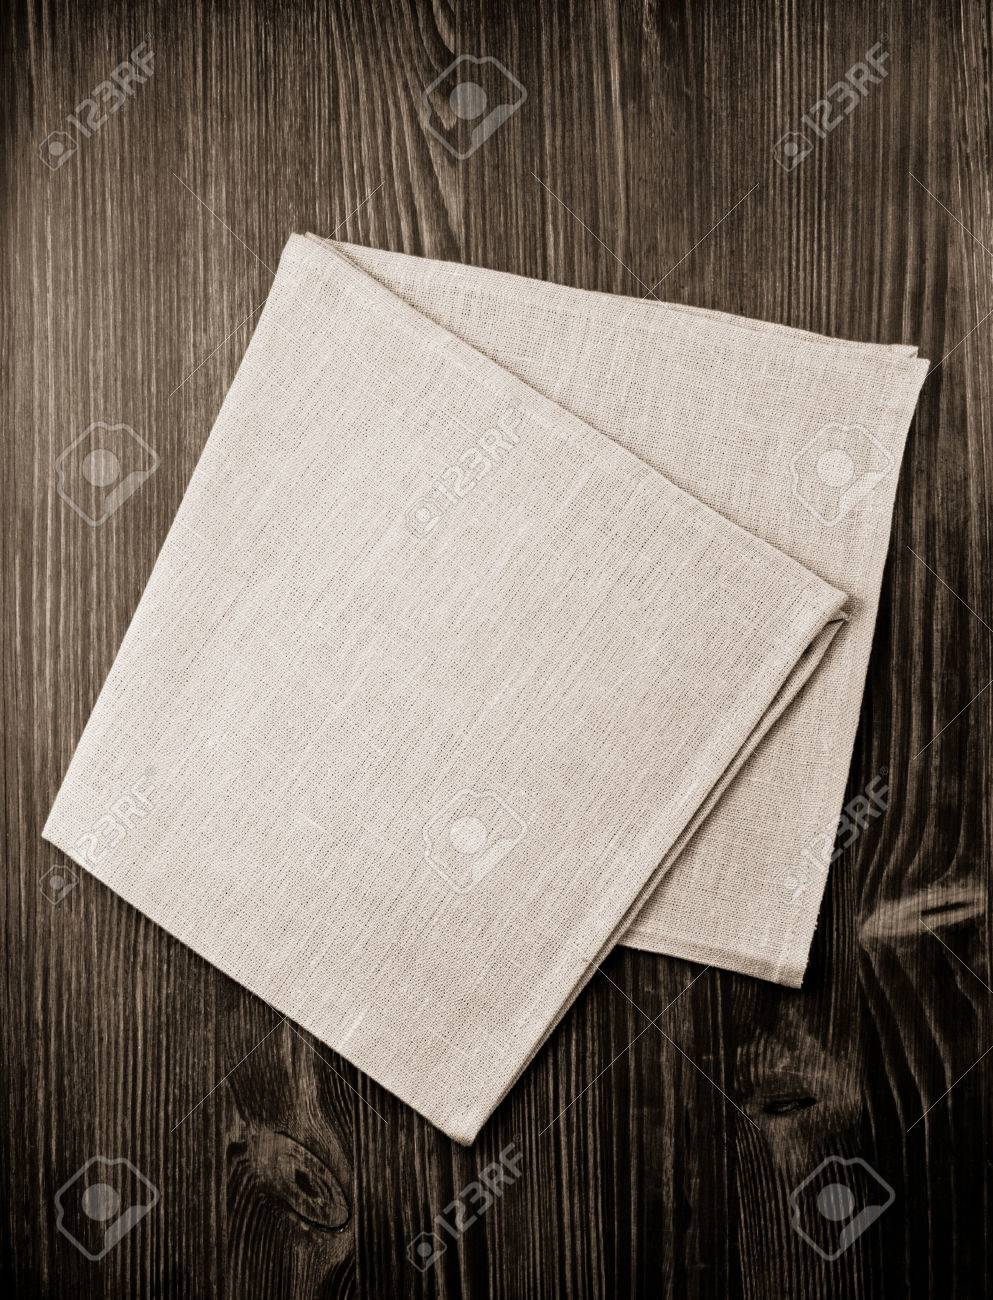 cloth napkin on wooden background - 47290207